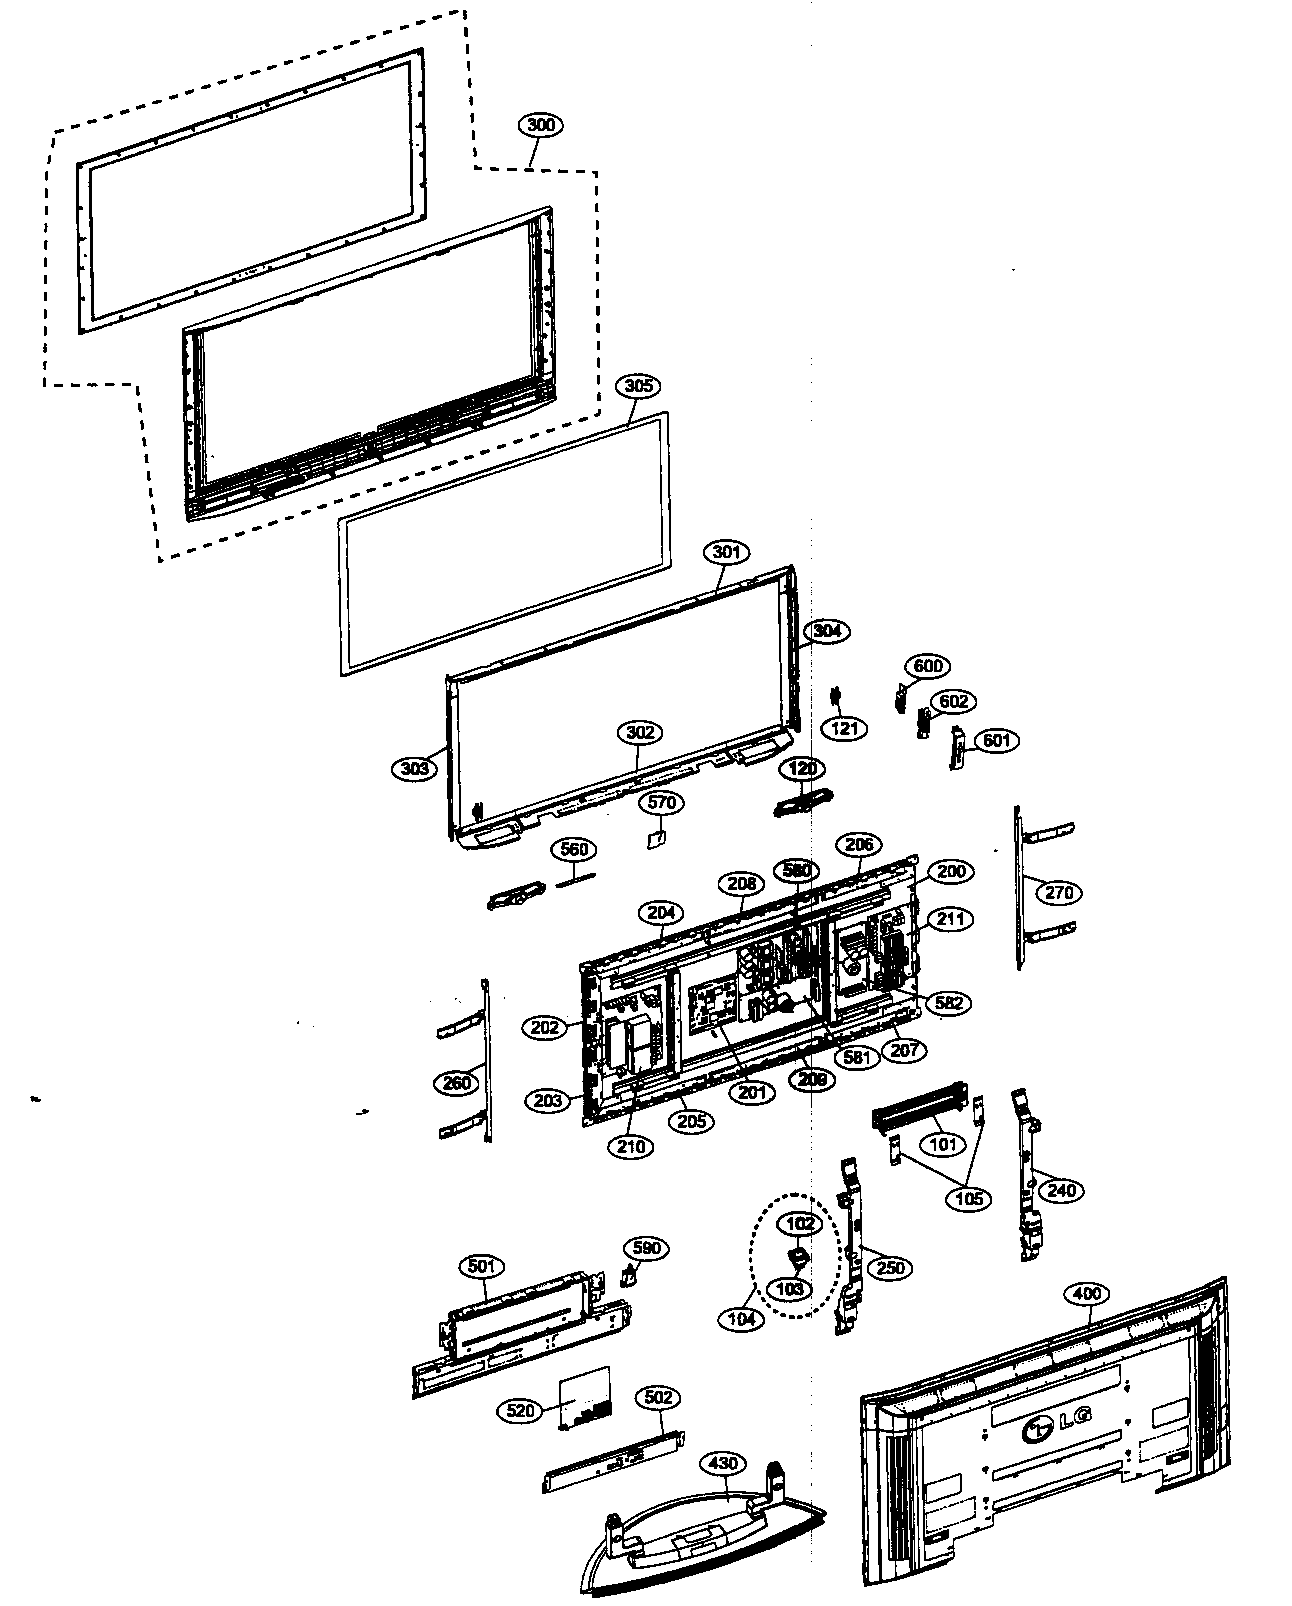 60 Inch Lg Plasma Tv Parts Diagram